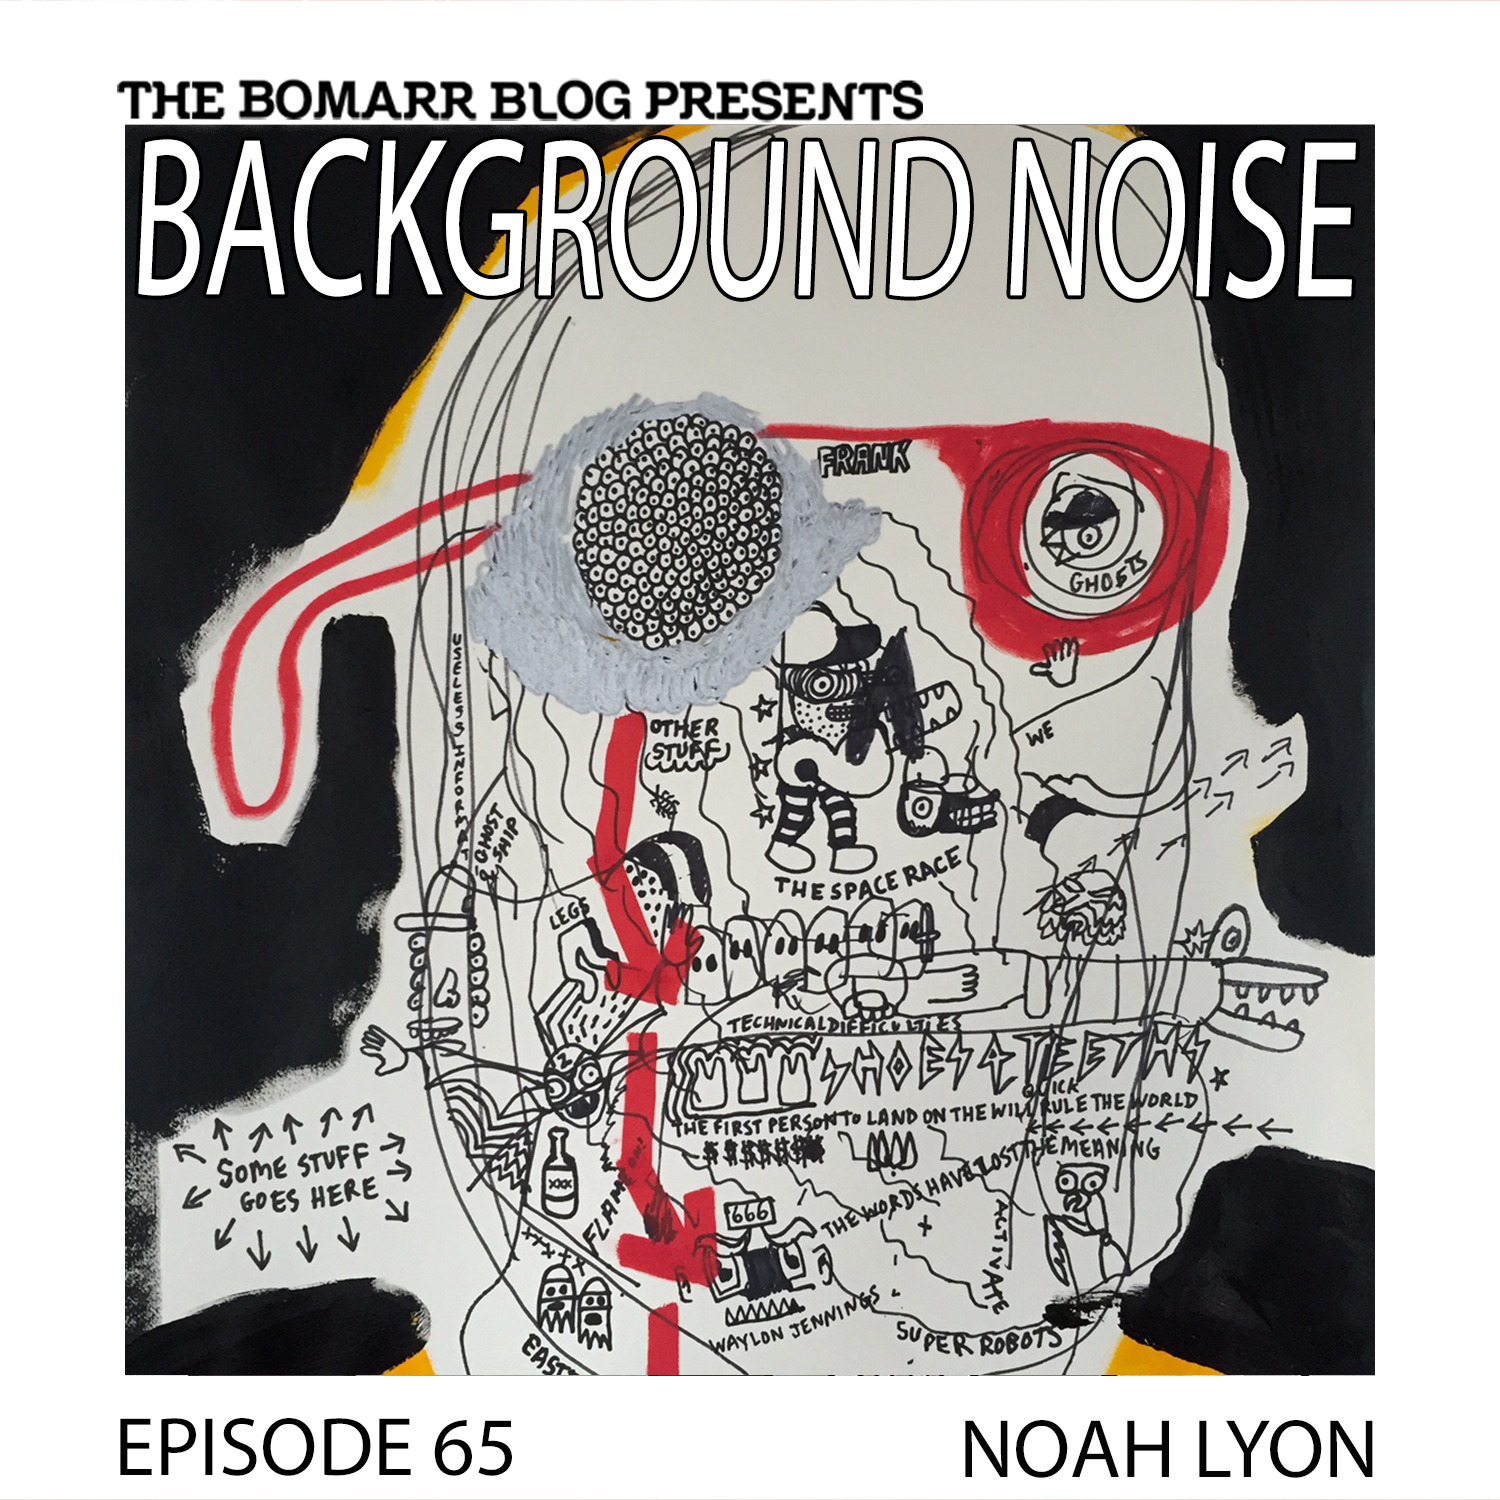 THE BACKGROUND NOISE PODCAST SERIES FOCUSES ON THE MUSIC THAT ARTISTS LISTEN TO WHEN THEY WORK, WHAT MUSIC INSPIRES THEM, OR JUST MUSIC THEY LIKE. THIS WEEK, IN EPISODE 65, THE FOCUS IS ON ARTIST NOAH LYON.